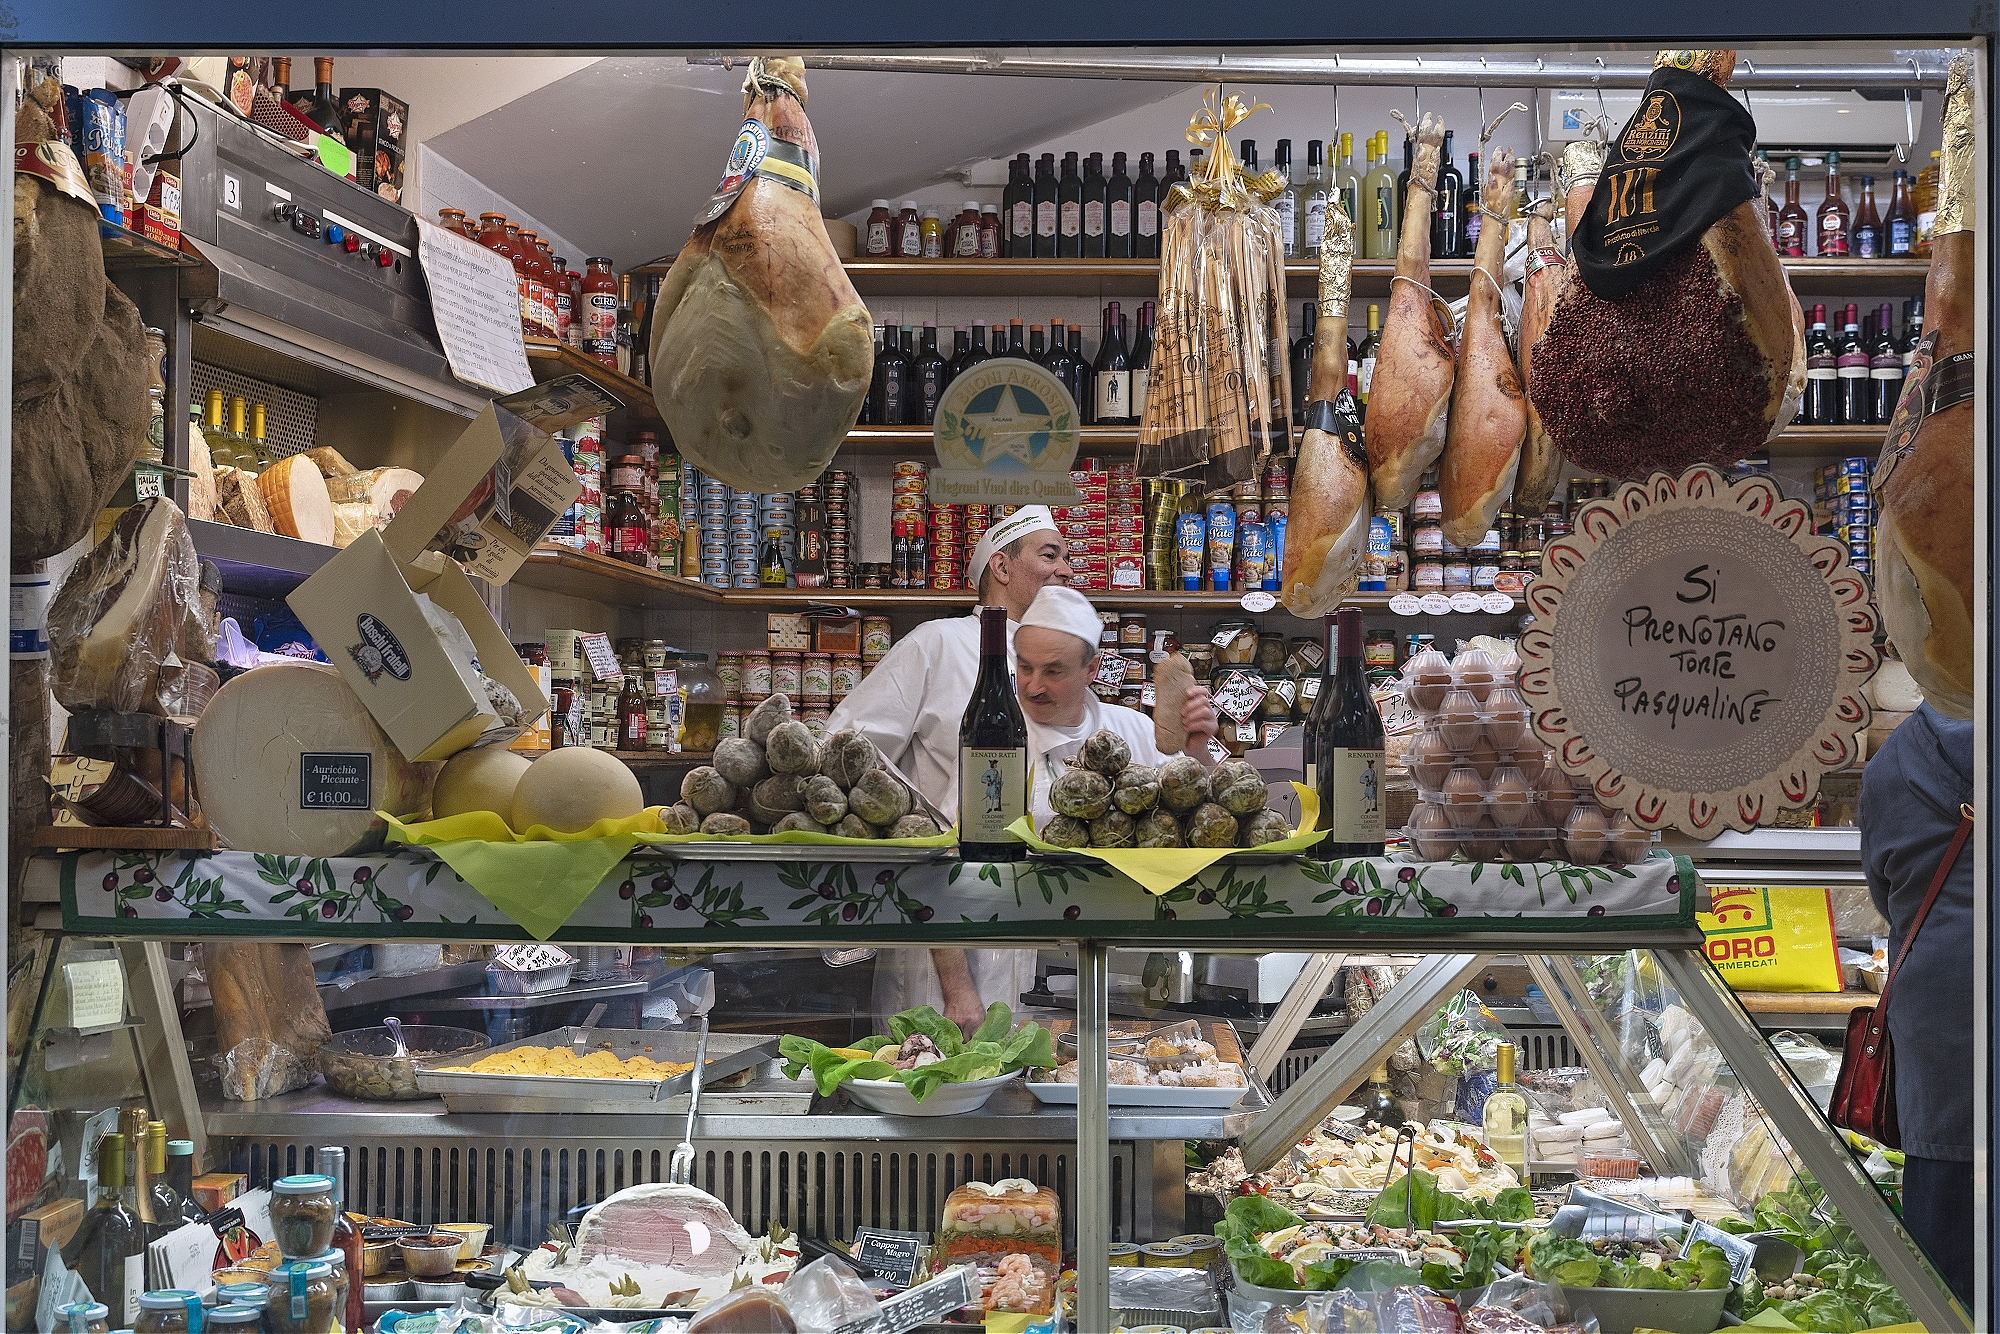 Delicatessen window, Rome